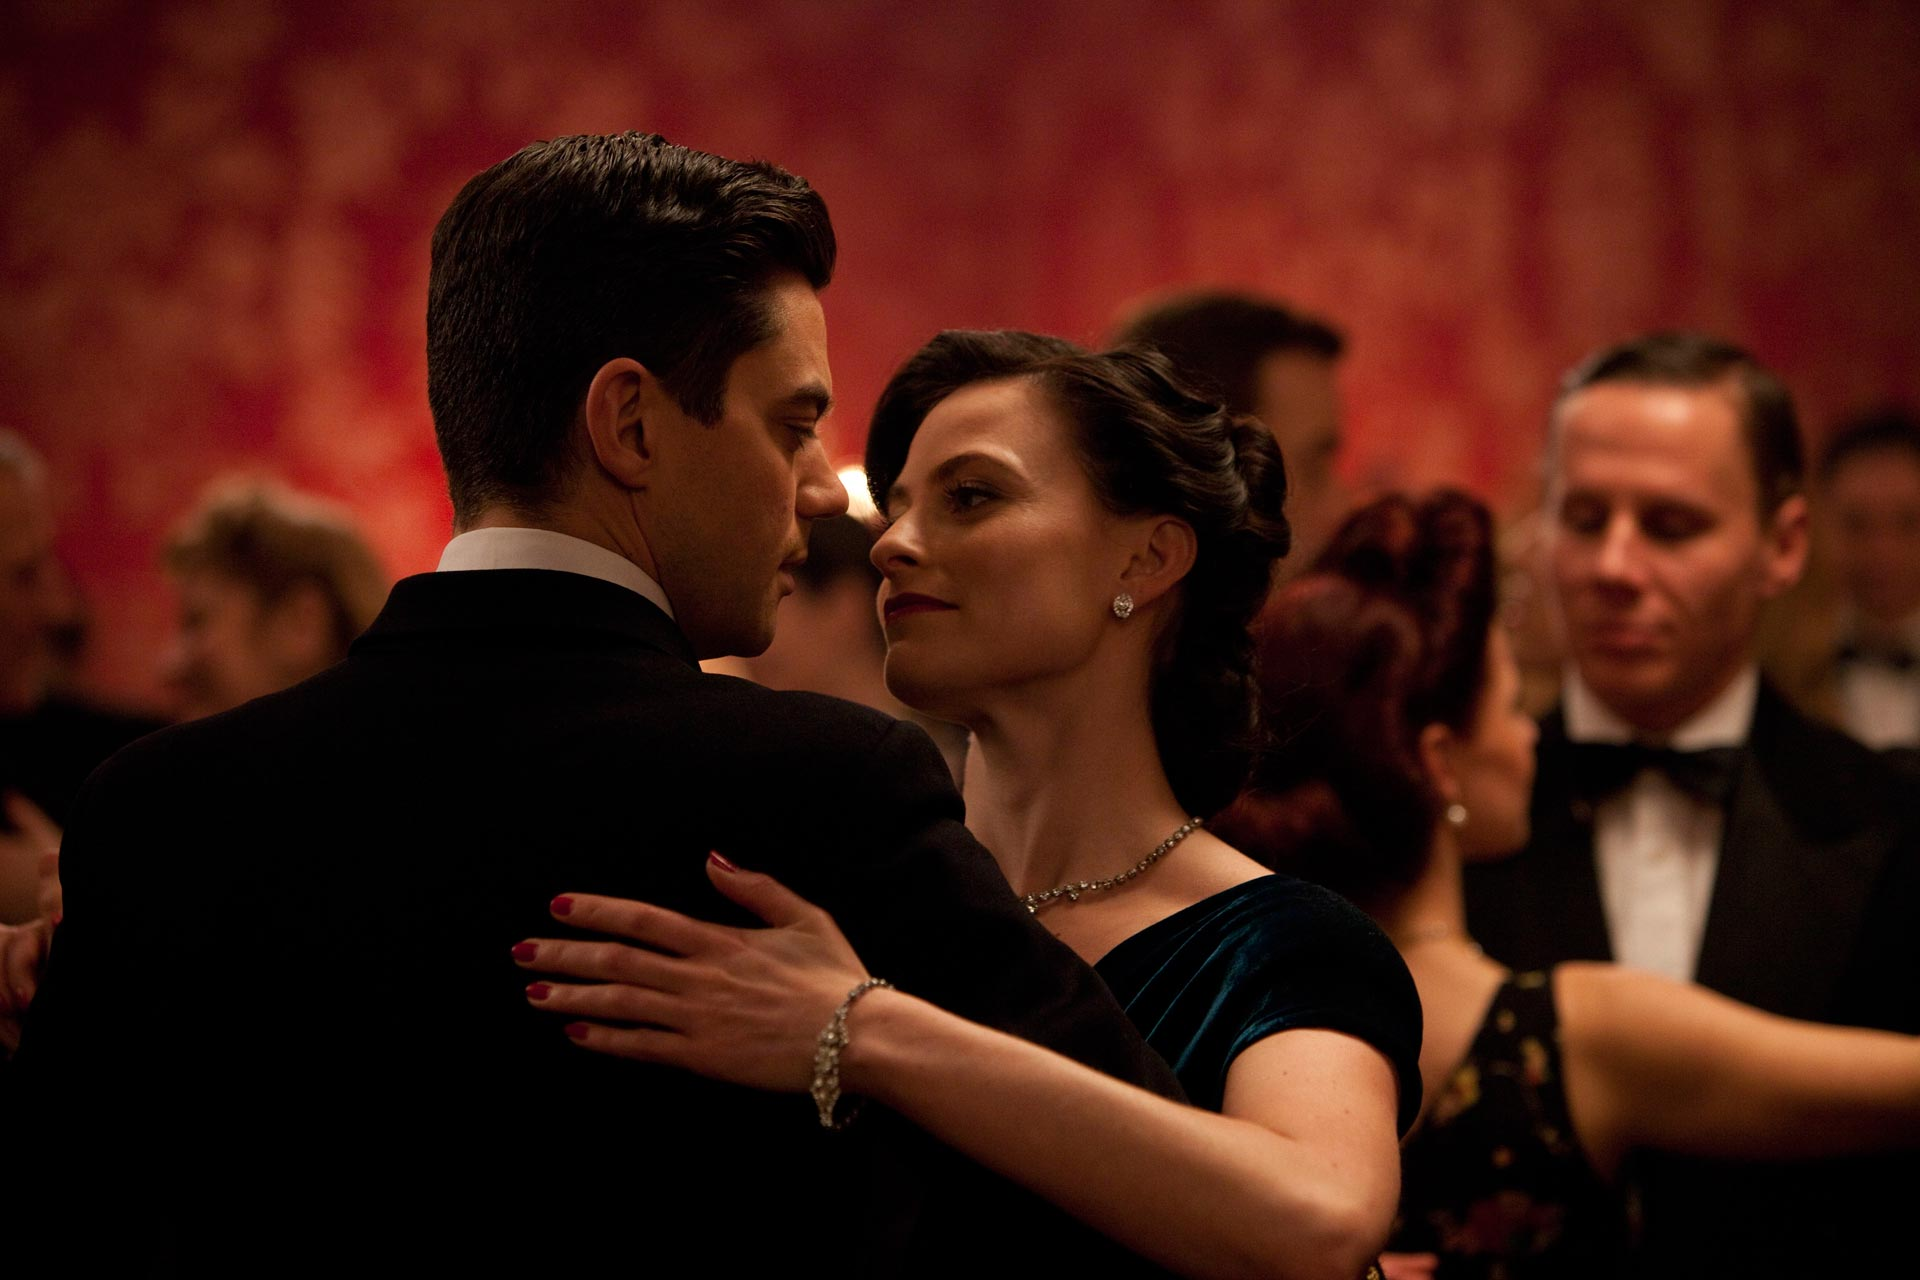 Dominic Cooper and Lara Pulver in Fleming: The Man Who Would Be Bond. Image credit: BBC.